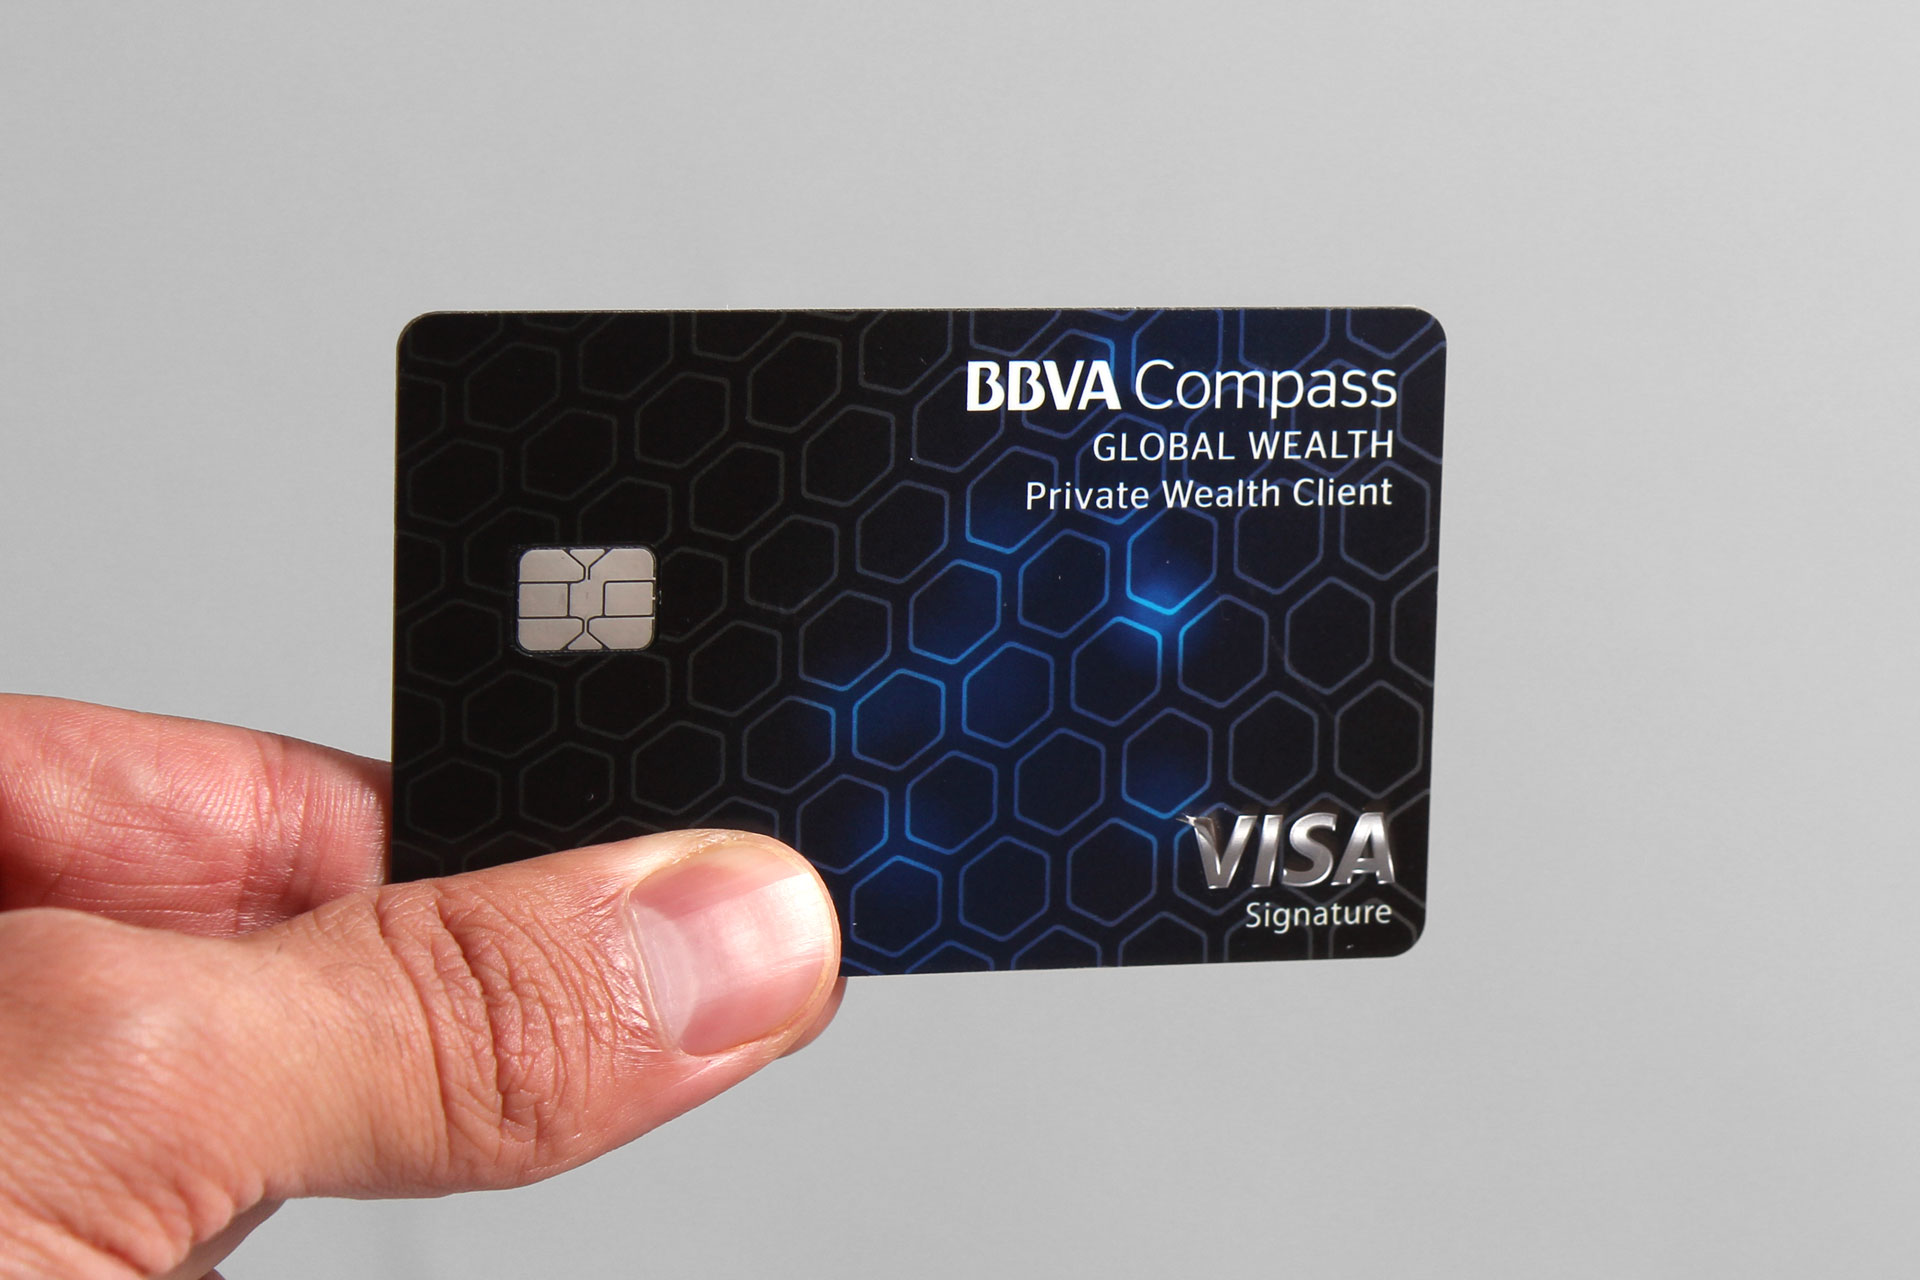 BBVA Compass bank card designs